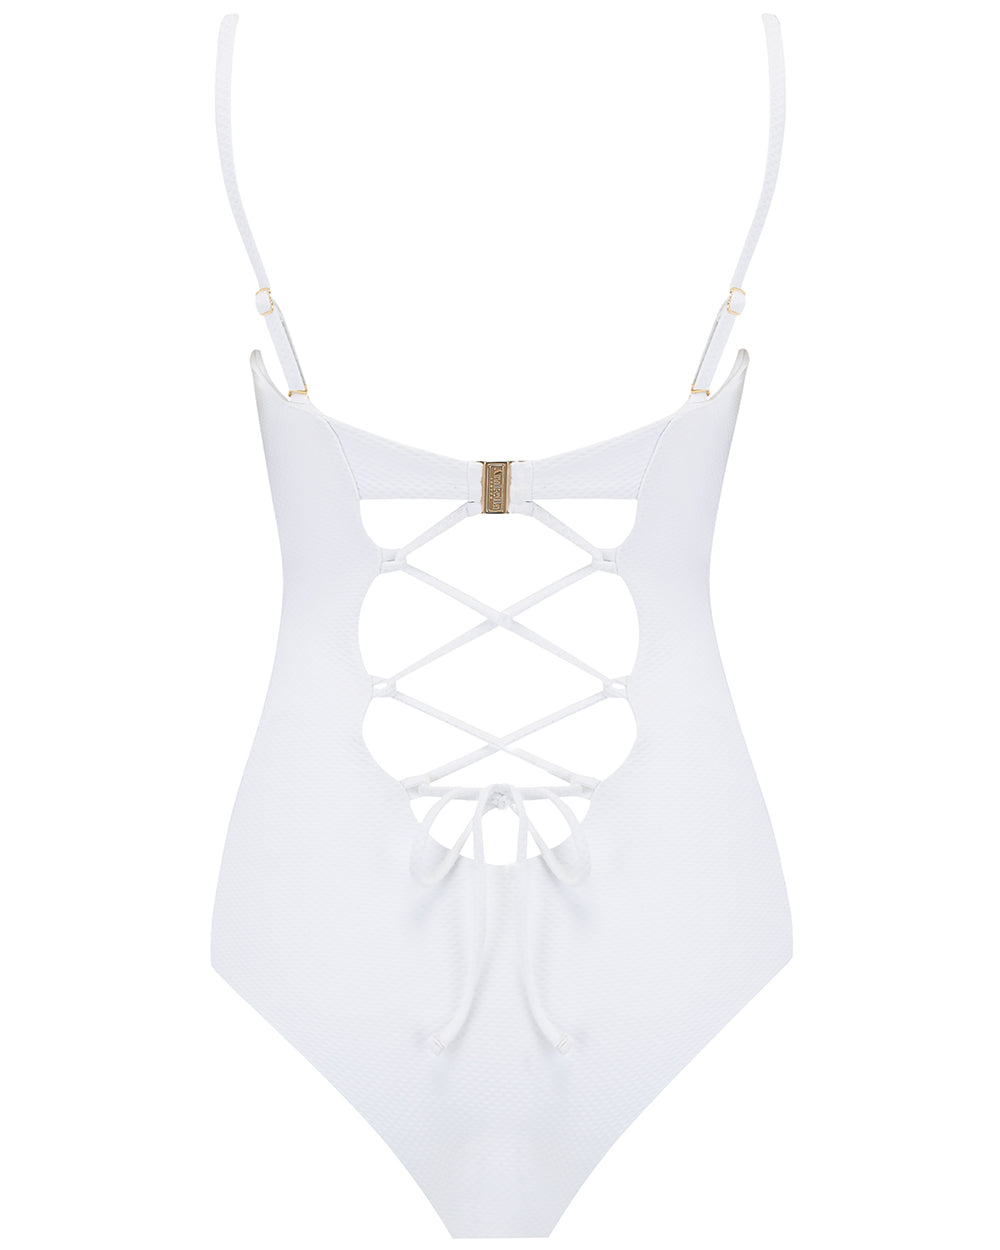 The 9.2.9 Swimsuit - Ivory